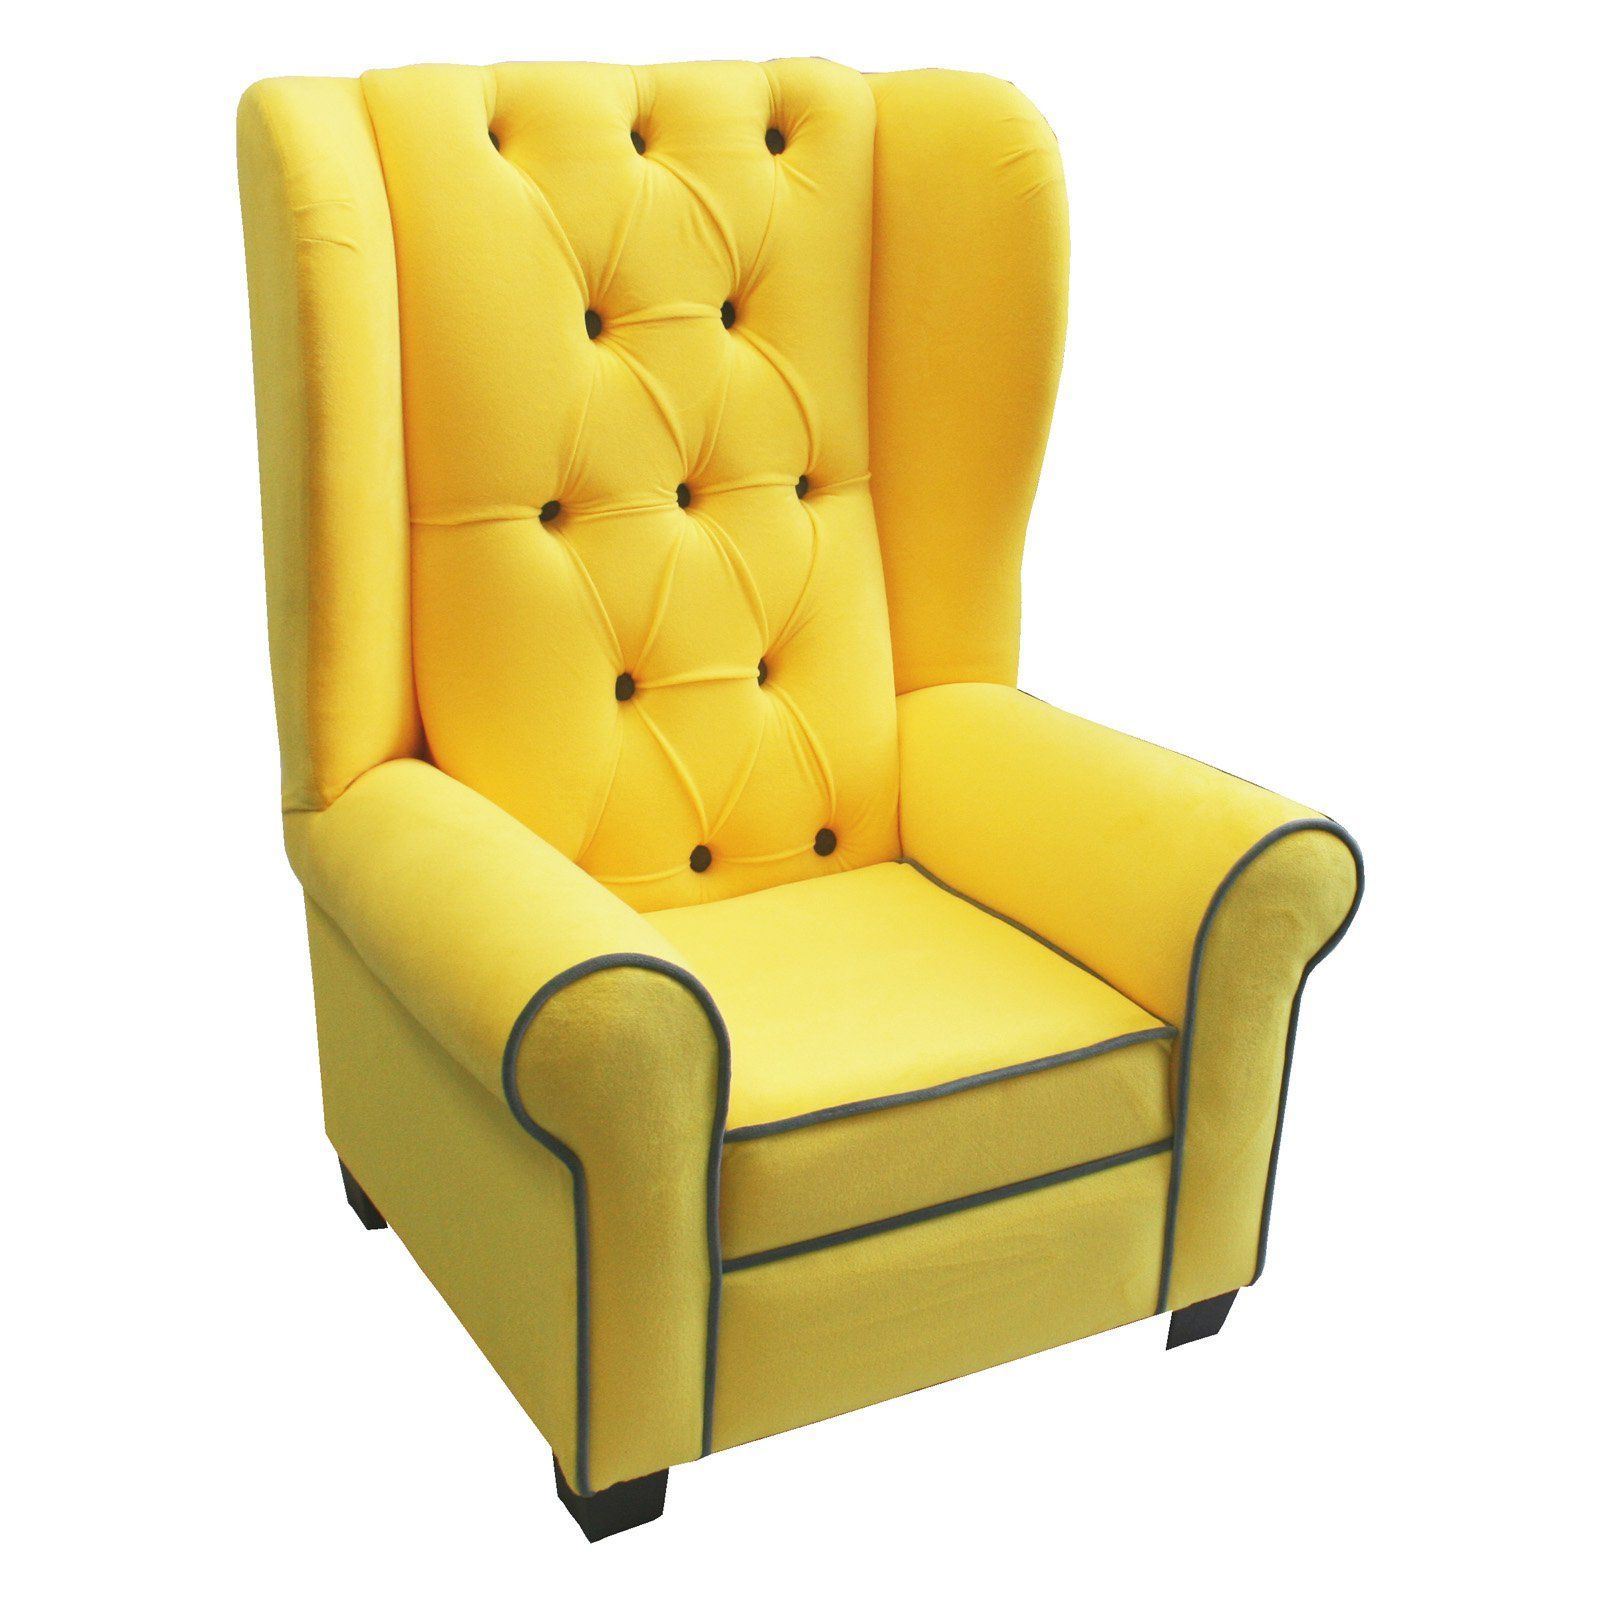 Yellow Accent Chair   Http://www.genwhymovie.com/yellow